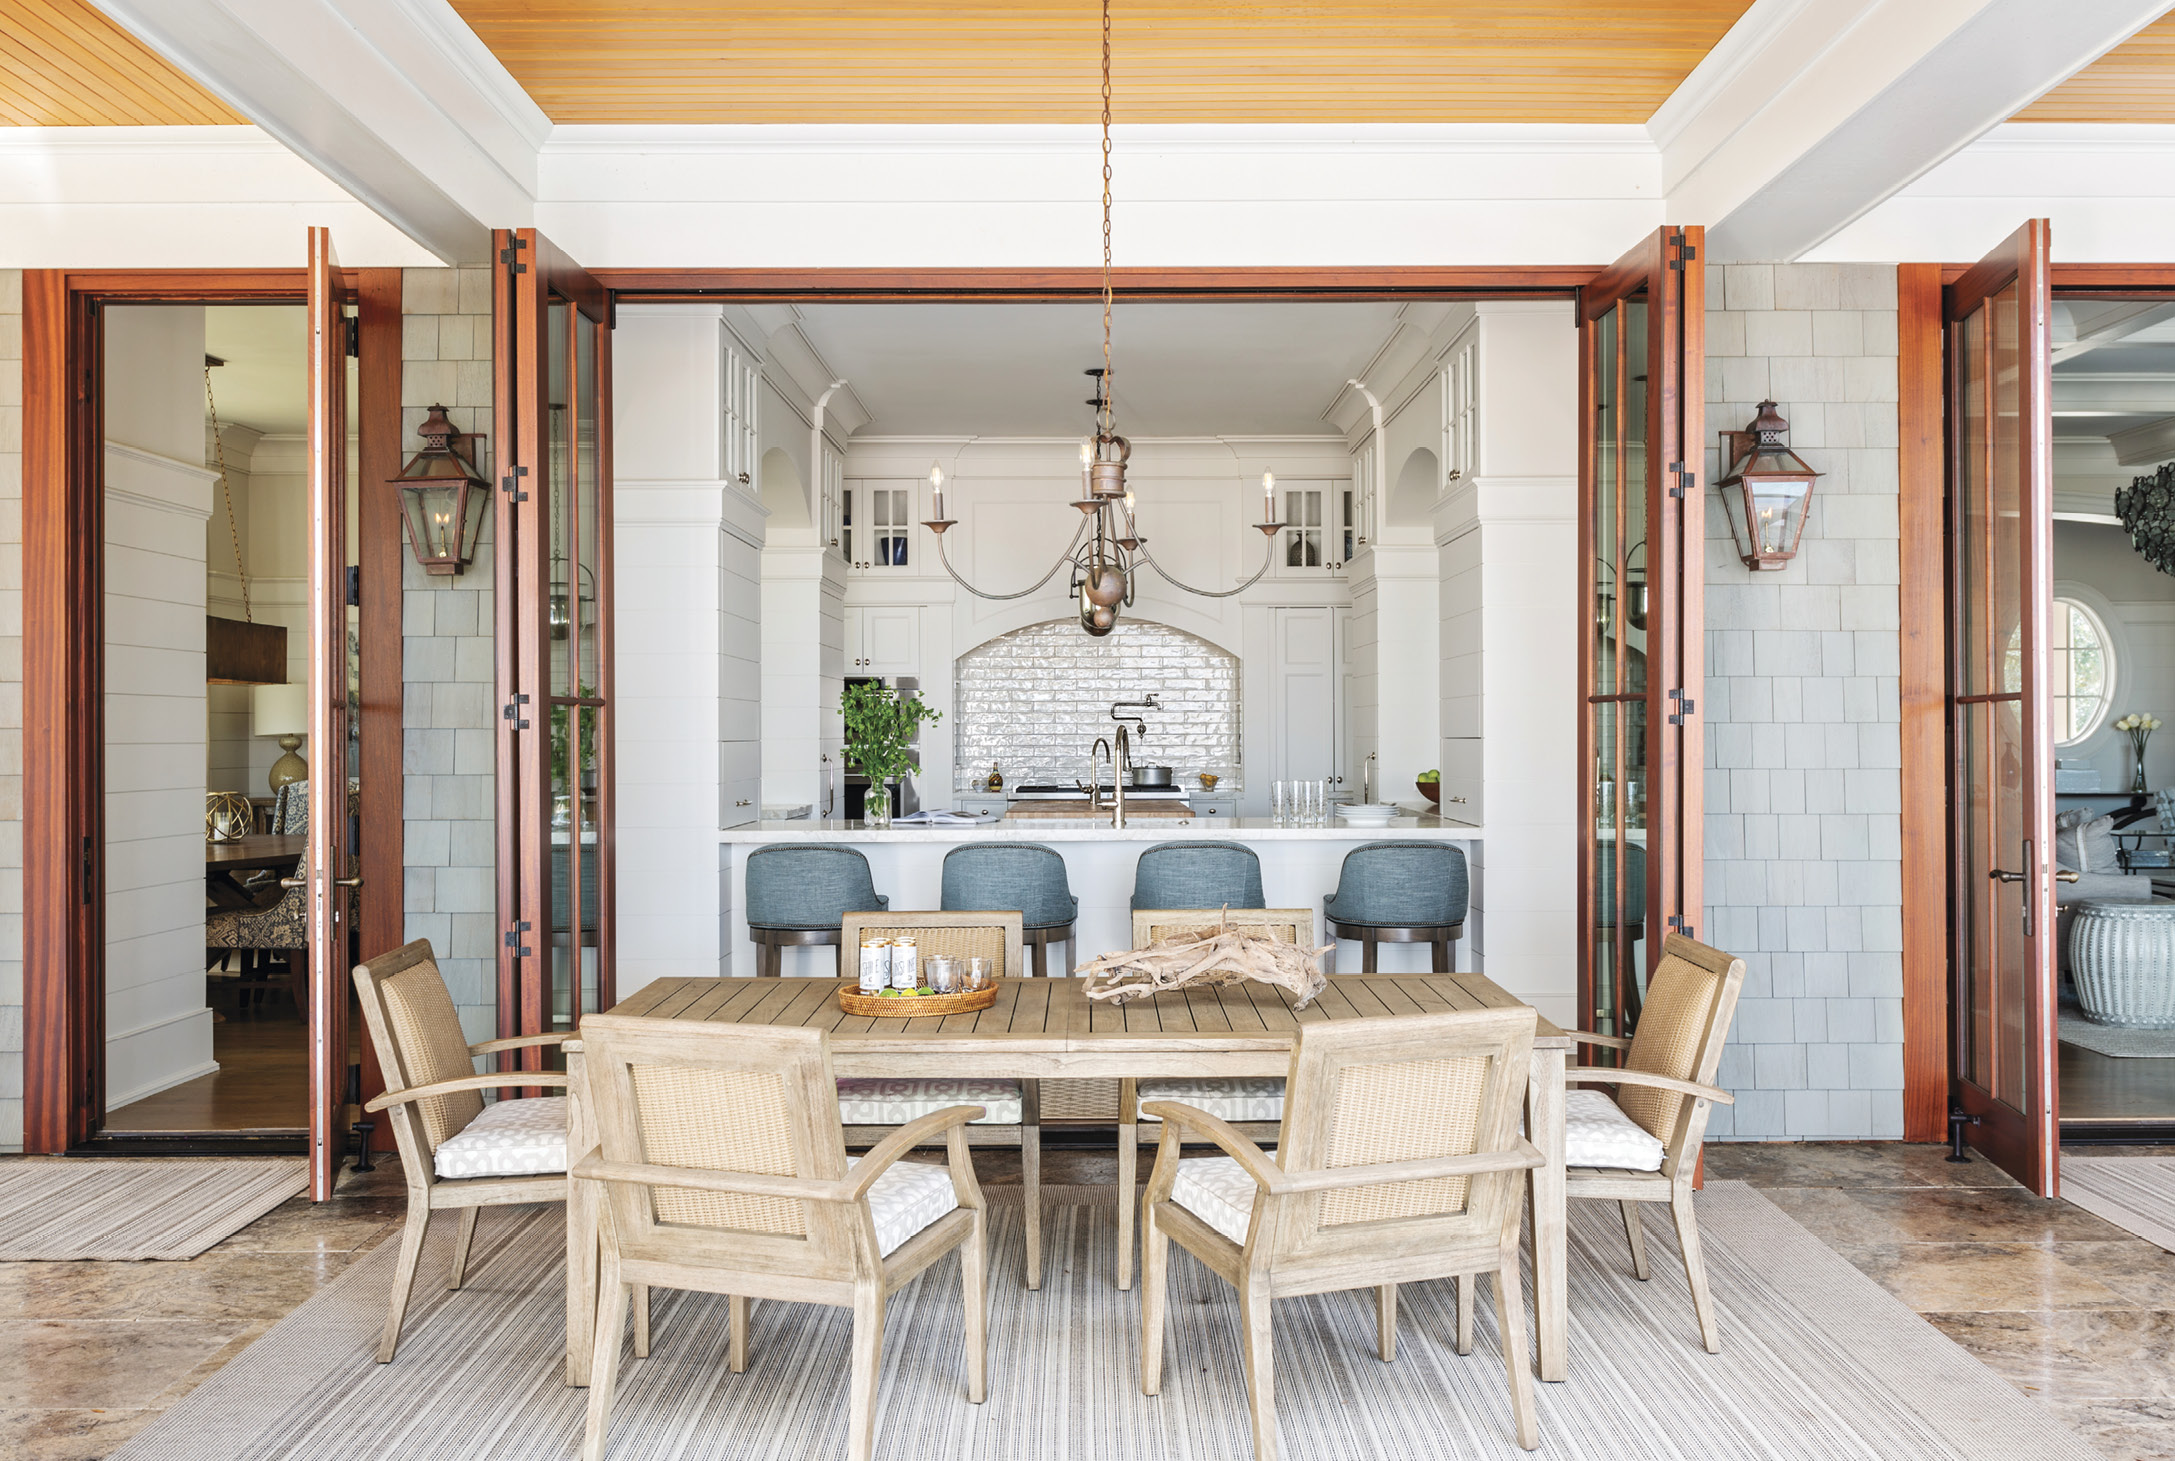 EATING IN & OUT: A floating kitchen anchors the home, tying the indoor and outdoor living spaces together. The alfresco Lloyd Flanders dining table and chairs, purchased at GDC Home, is as accessible to the chef as the formal dining room.